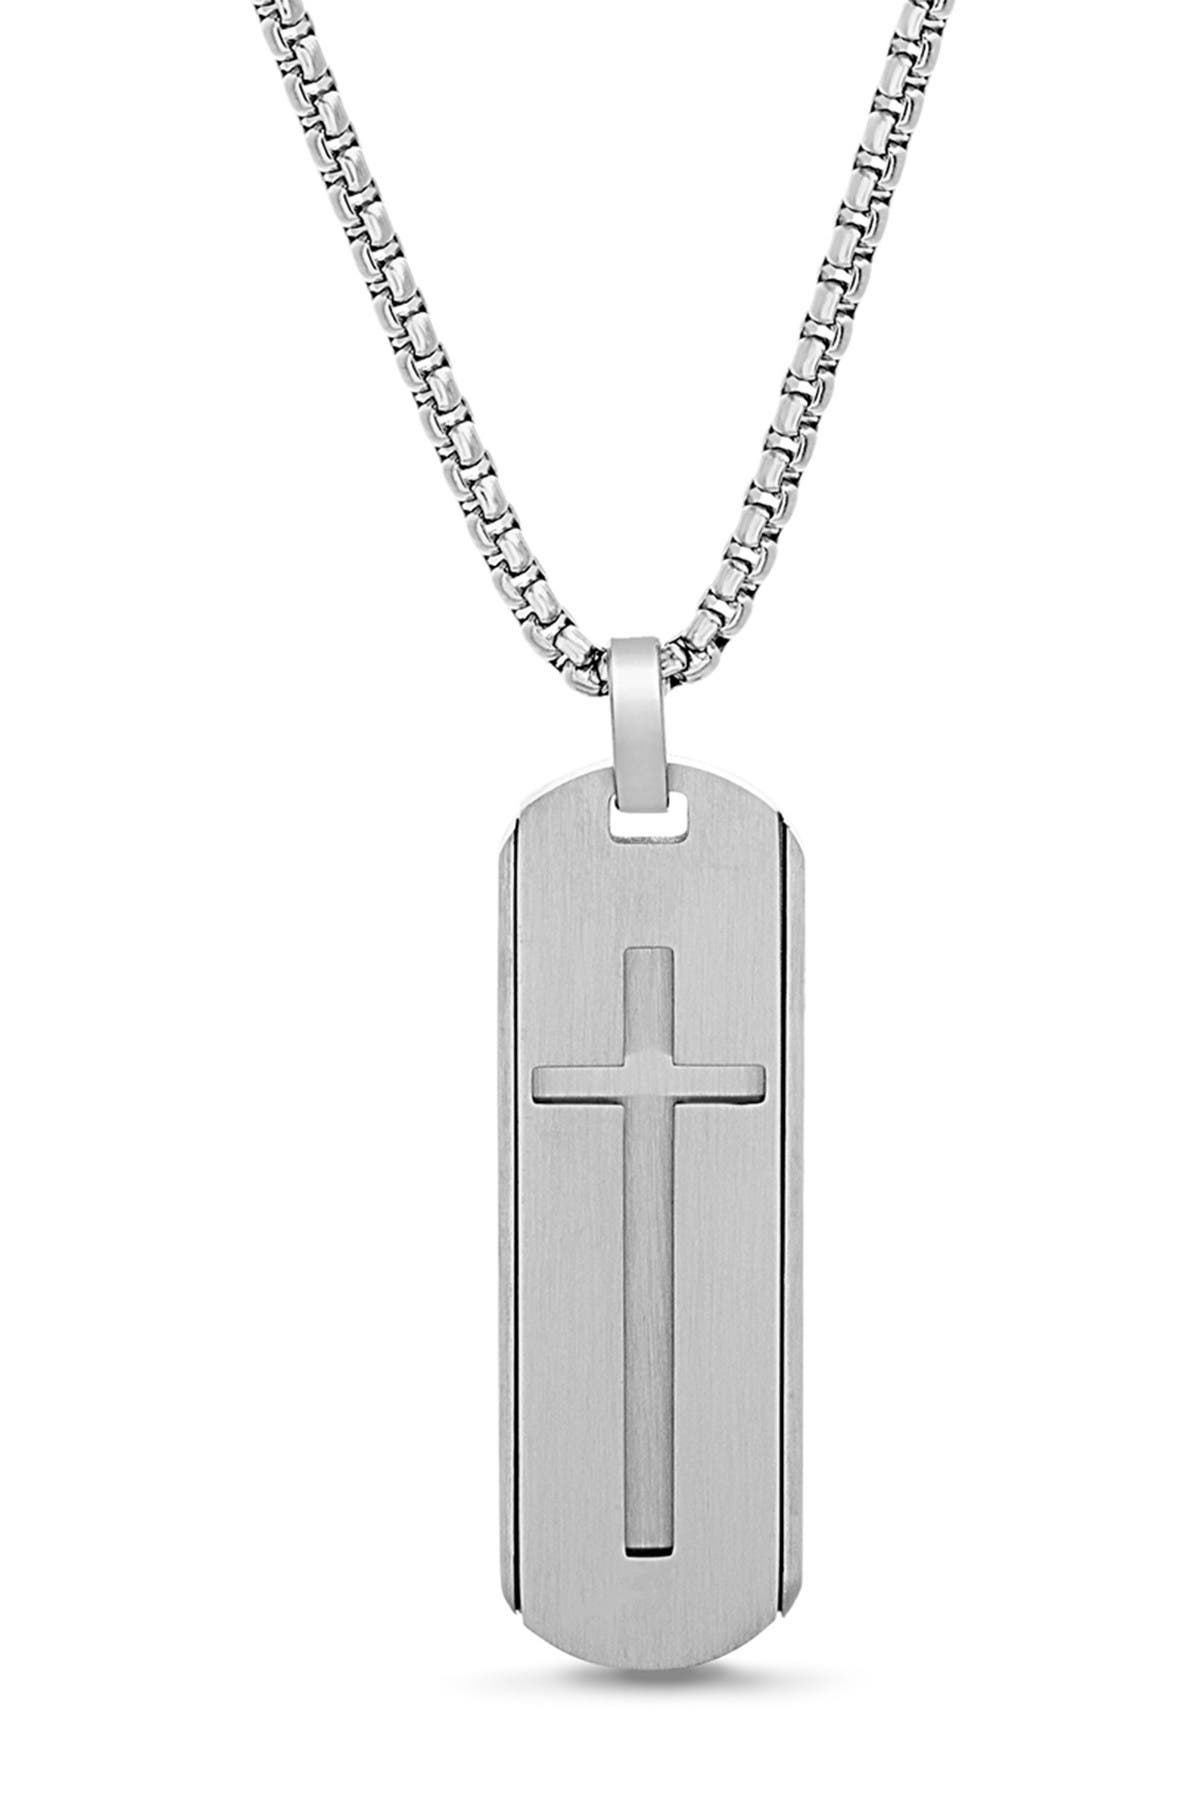 Image of Steve Madden Oval Open-Cross Dogtag Box Chain Necklace